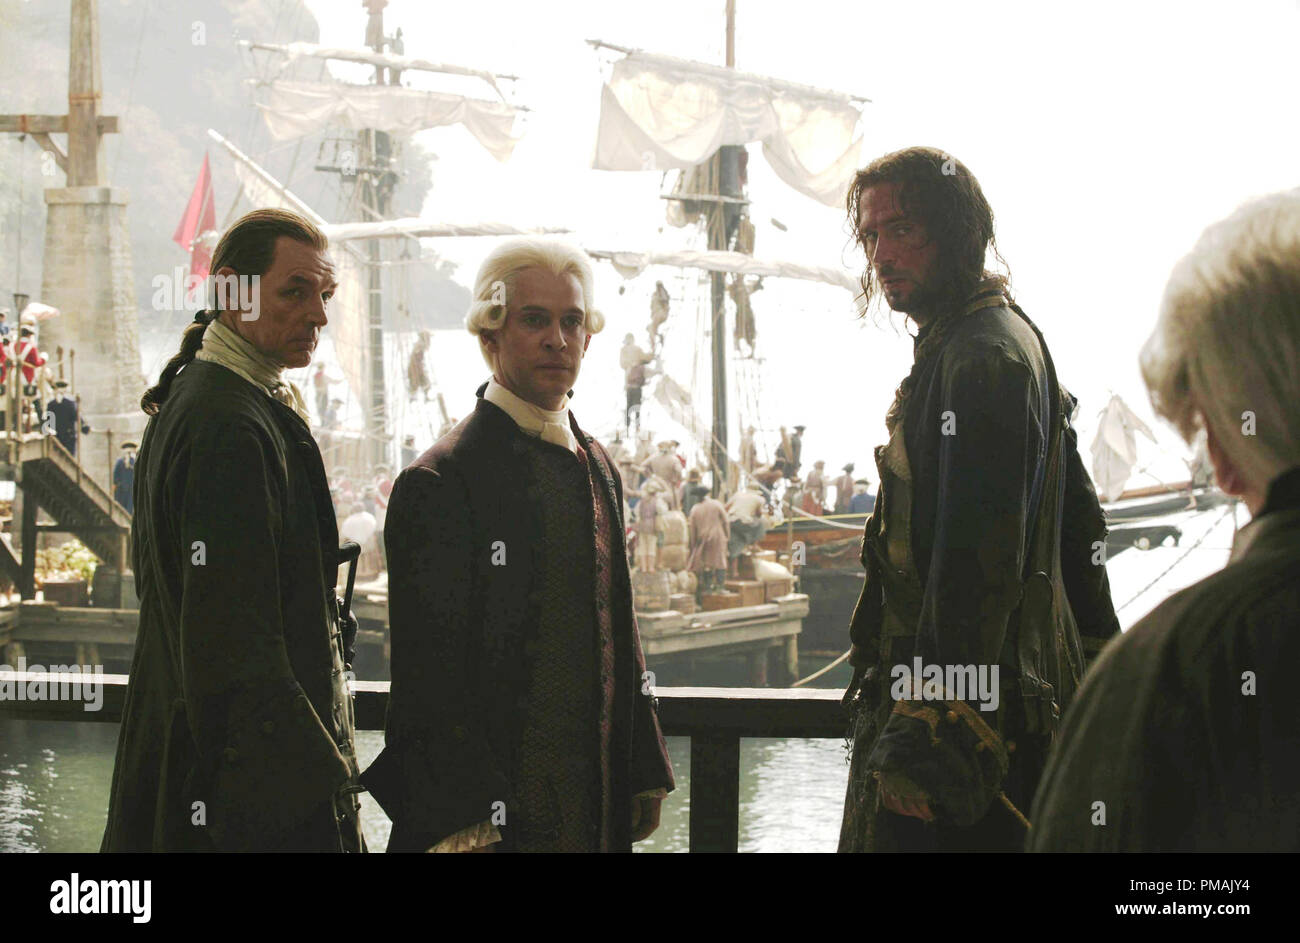 David Schofield, Tom Hollander and Jack Davenport  'Pirates of the Caribbean: Dead Man's Chest' (2006) Disney Enterprises, Inc.  All rights reserved - Stock Image